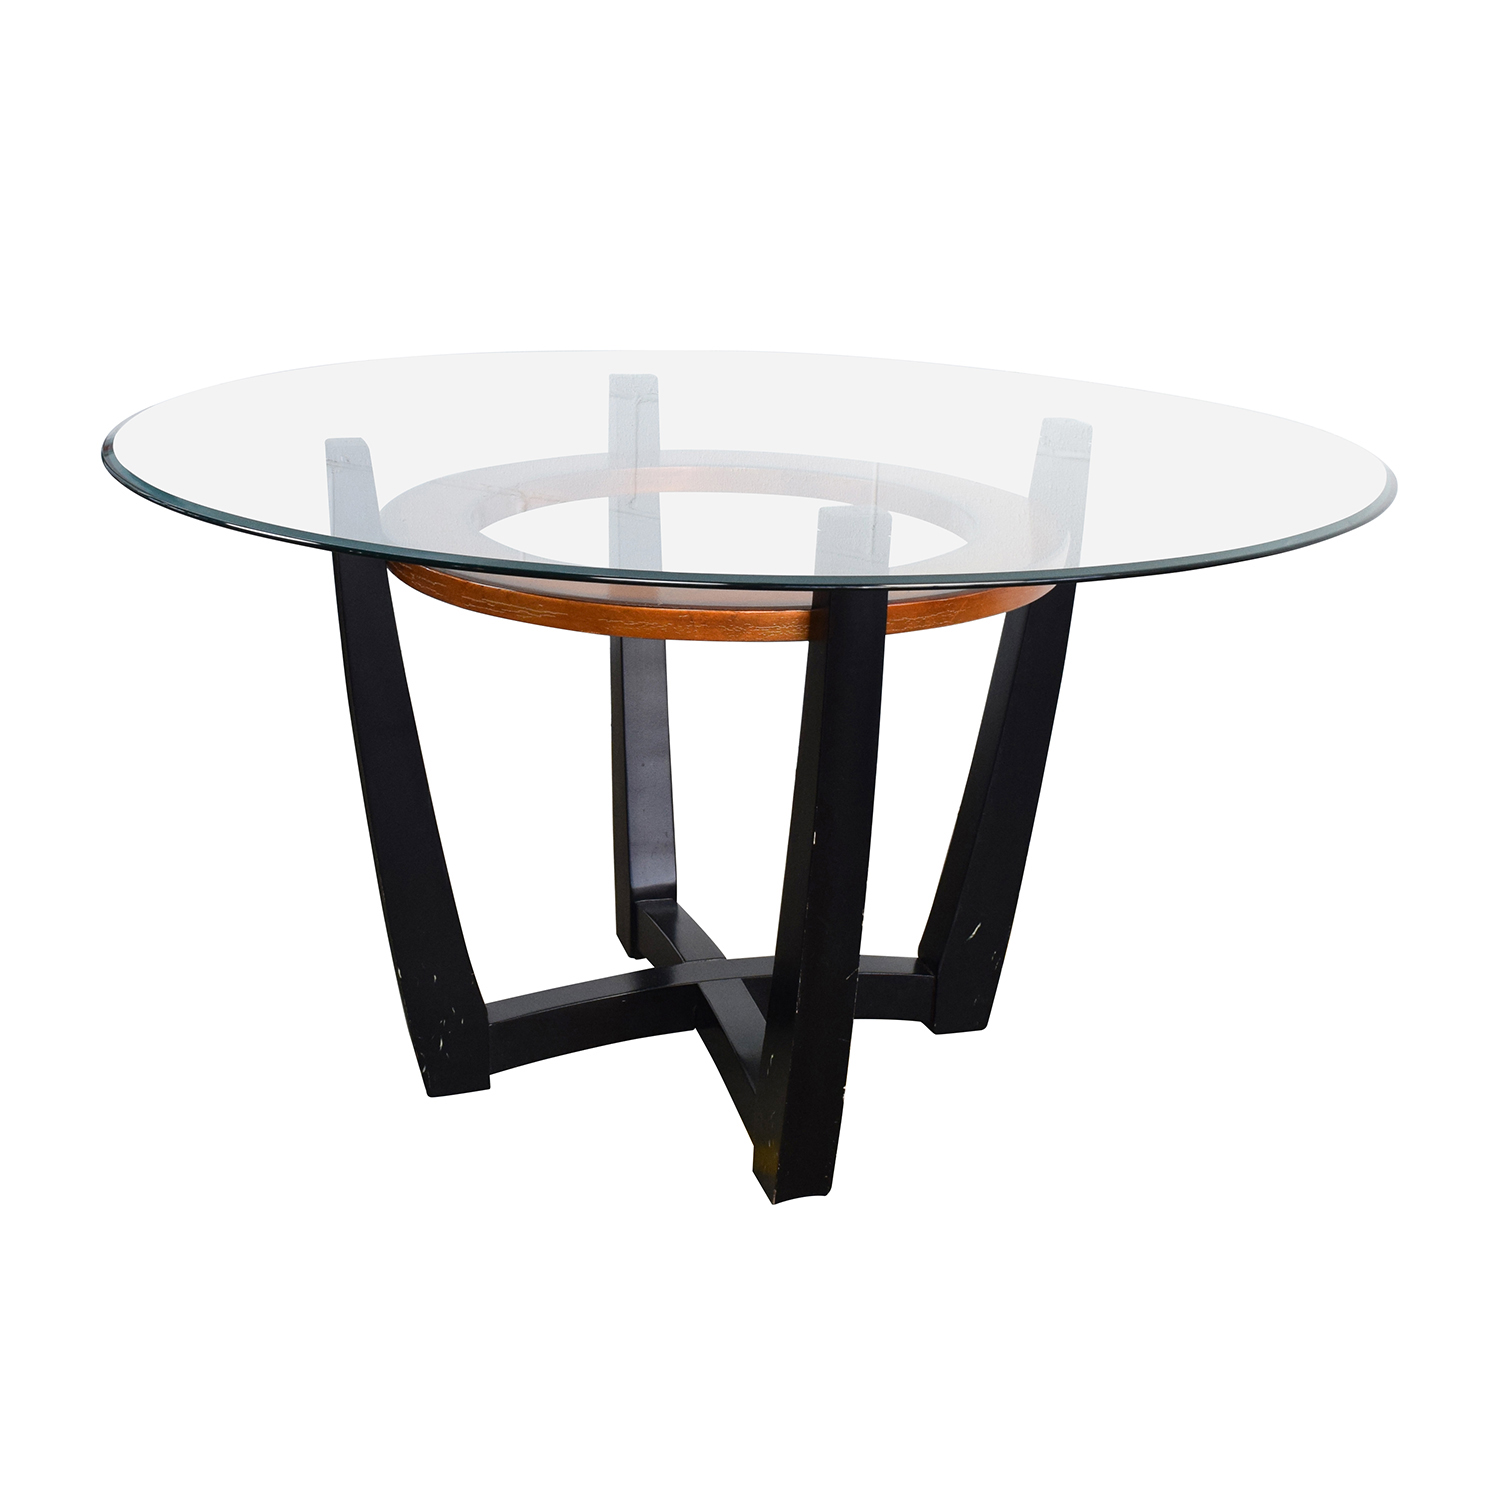 round glass kitchen tables cabinet distributors 88 off macy 39s elation dining table